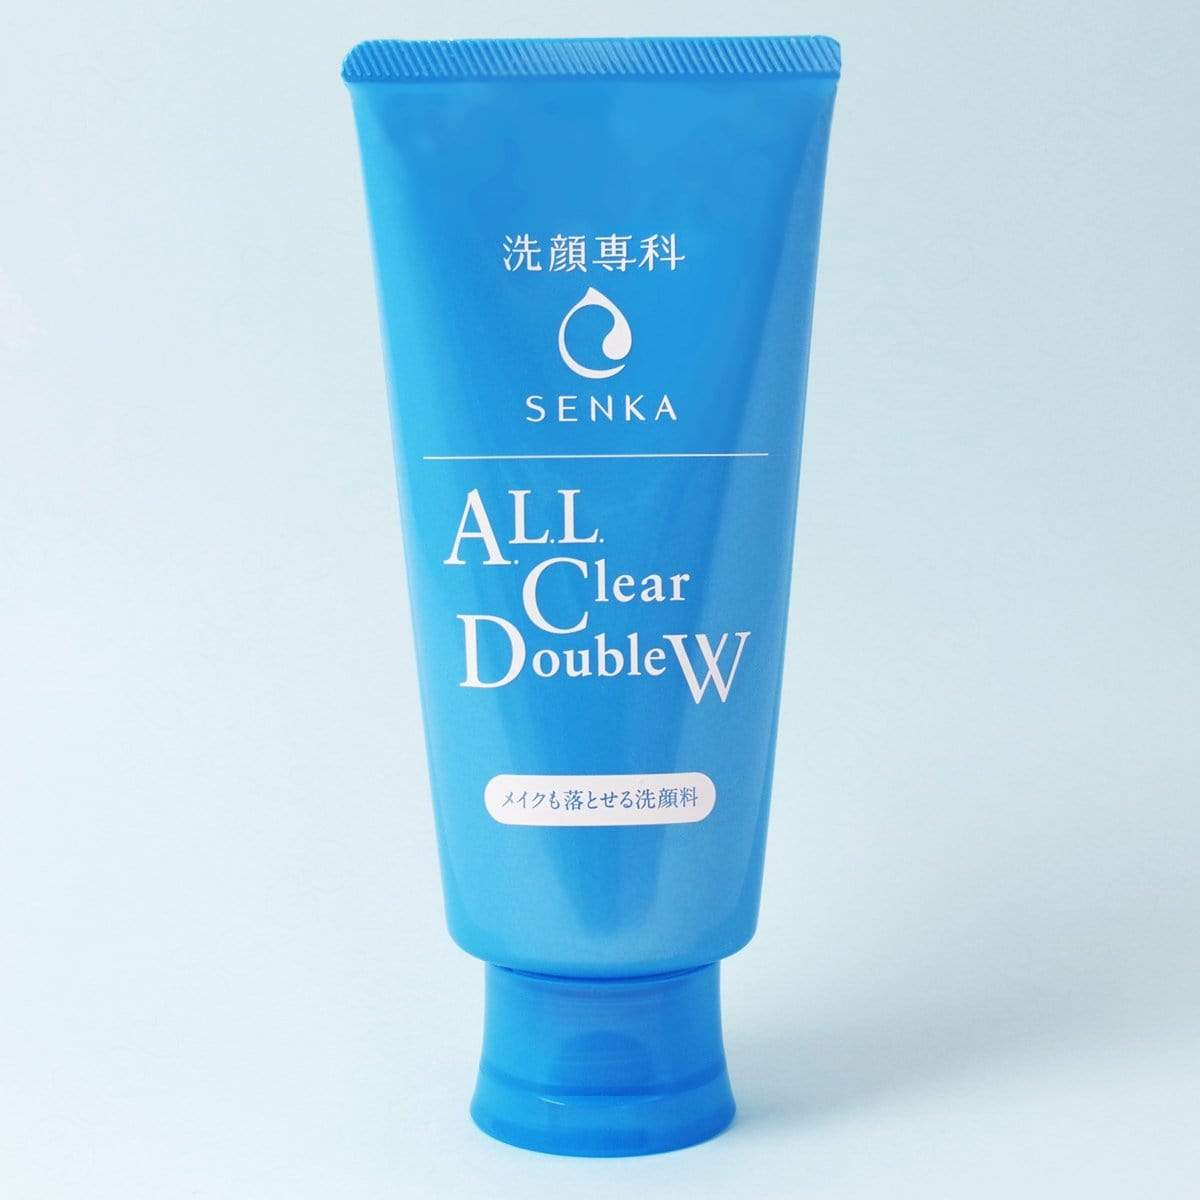 Senka All Clear Double W Cleanser